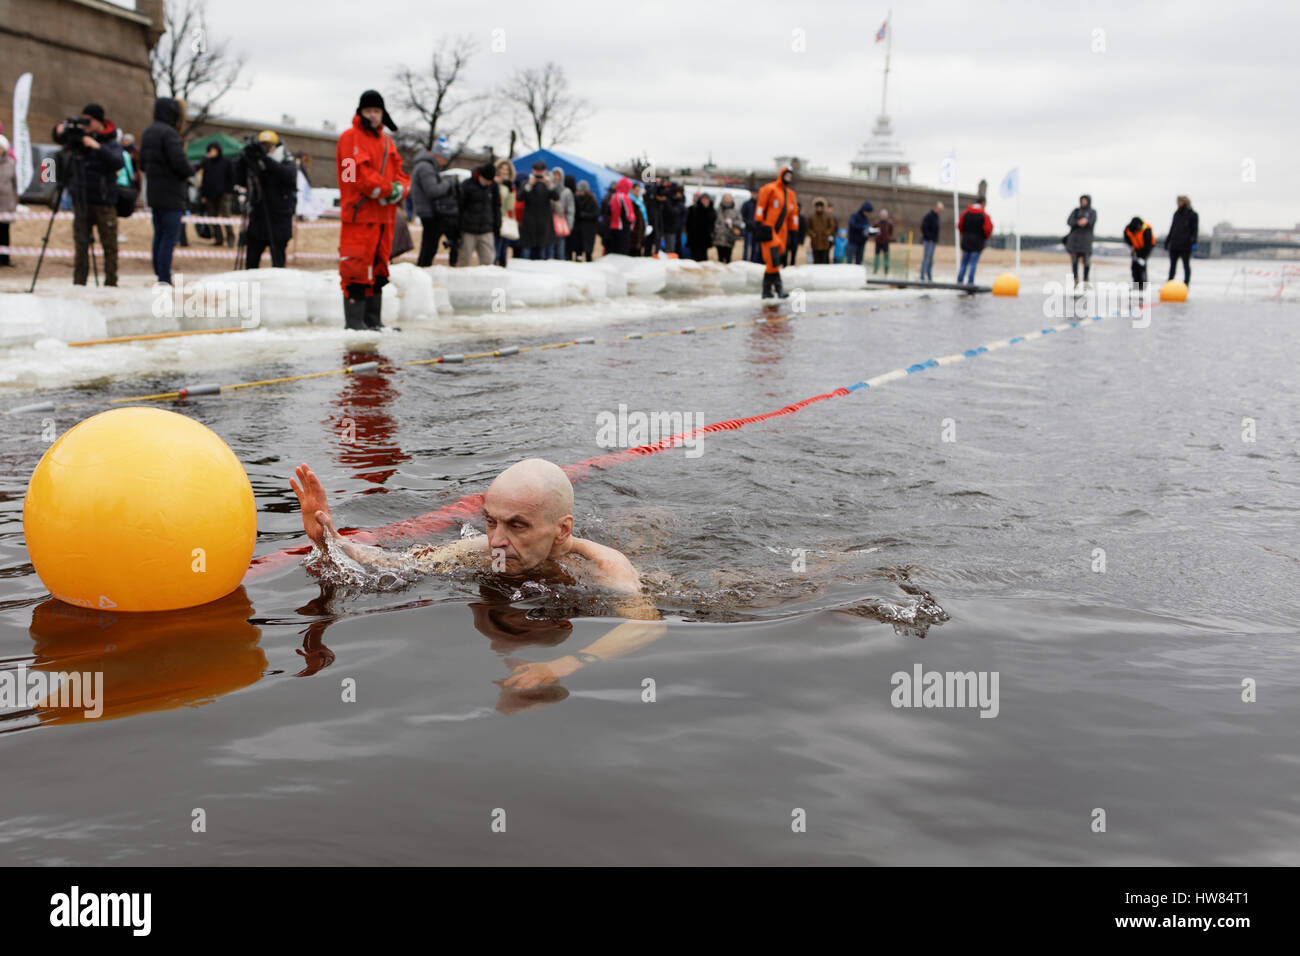 St. Petersburg, Russia, 18th March, 2017. People participate in a swim in river Neva at St. Peter and Paul fortress. Stock Photo